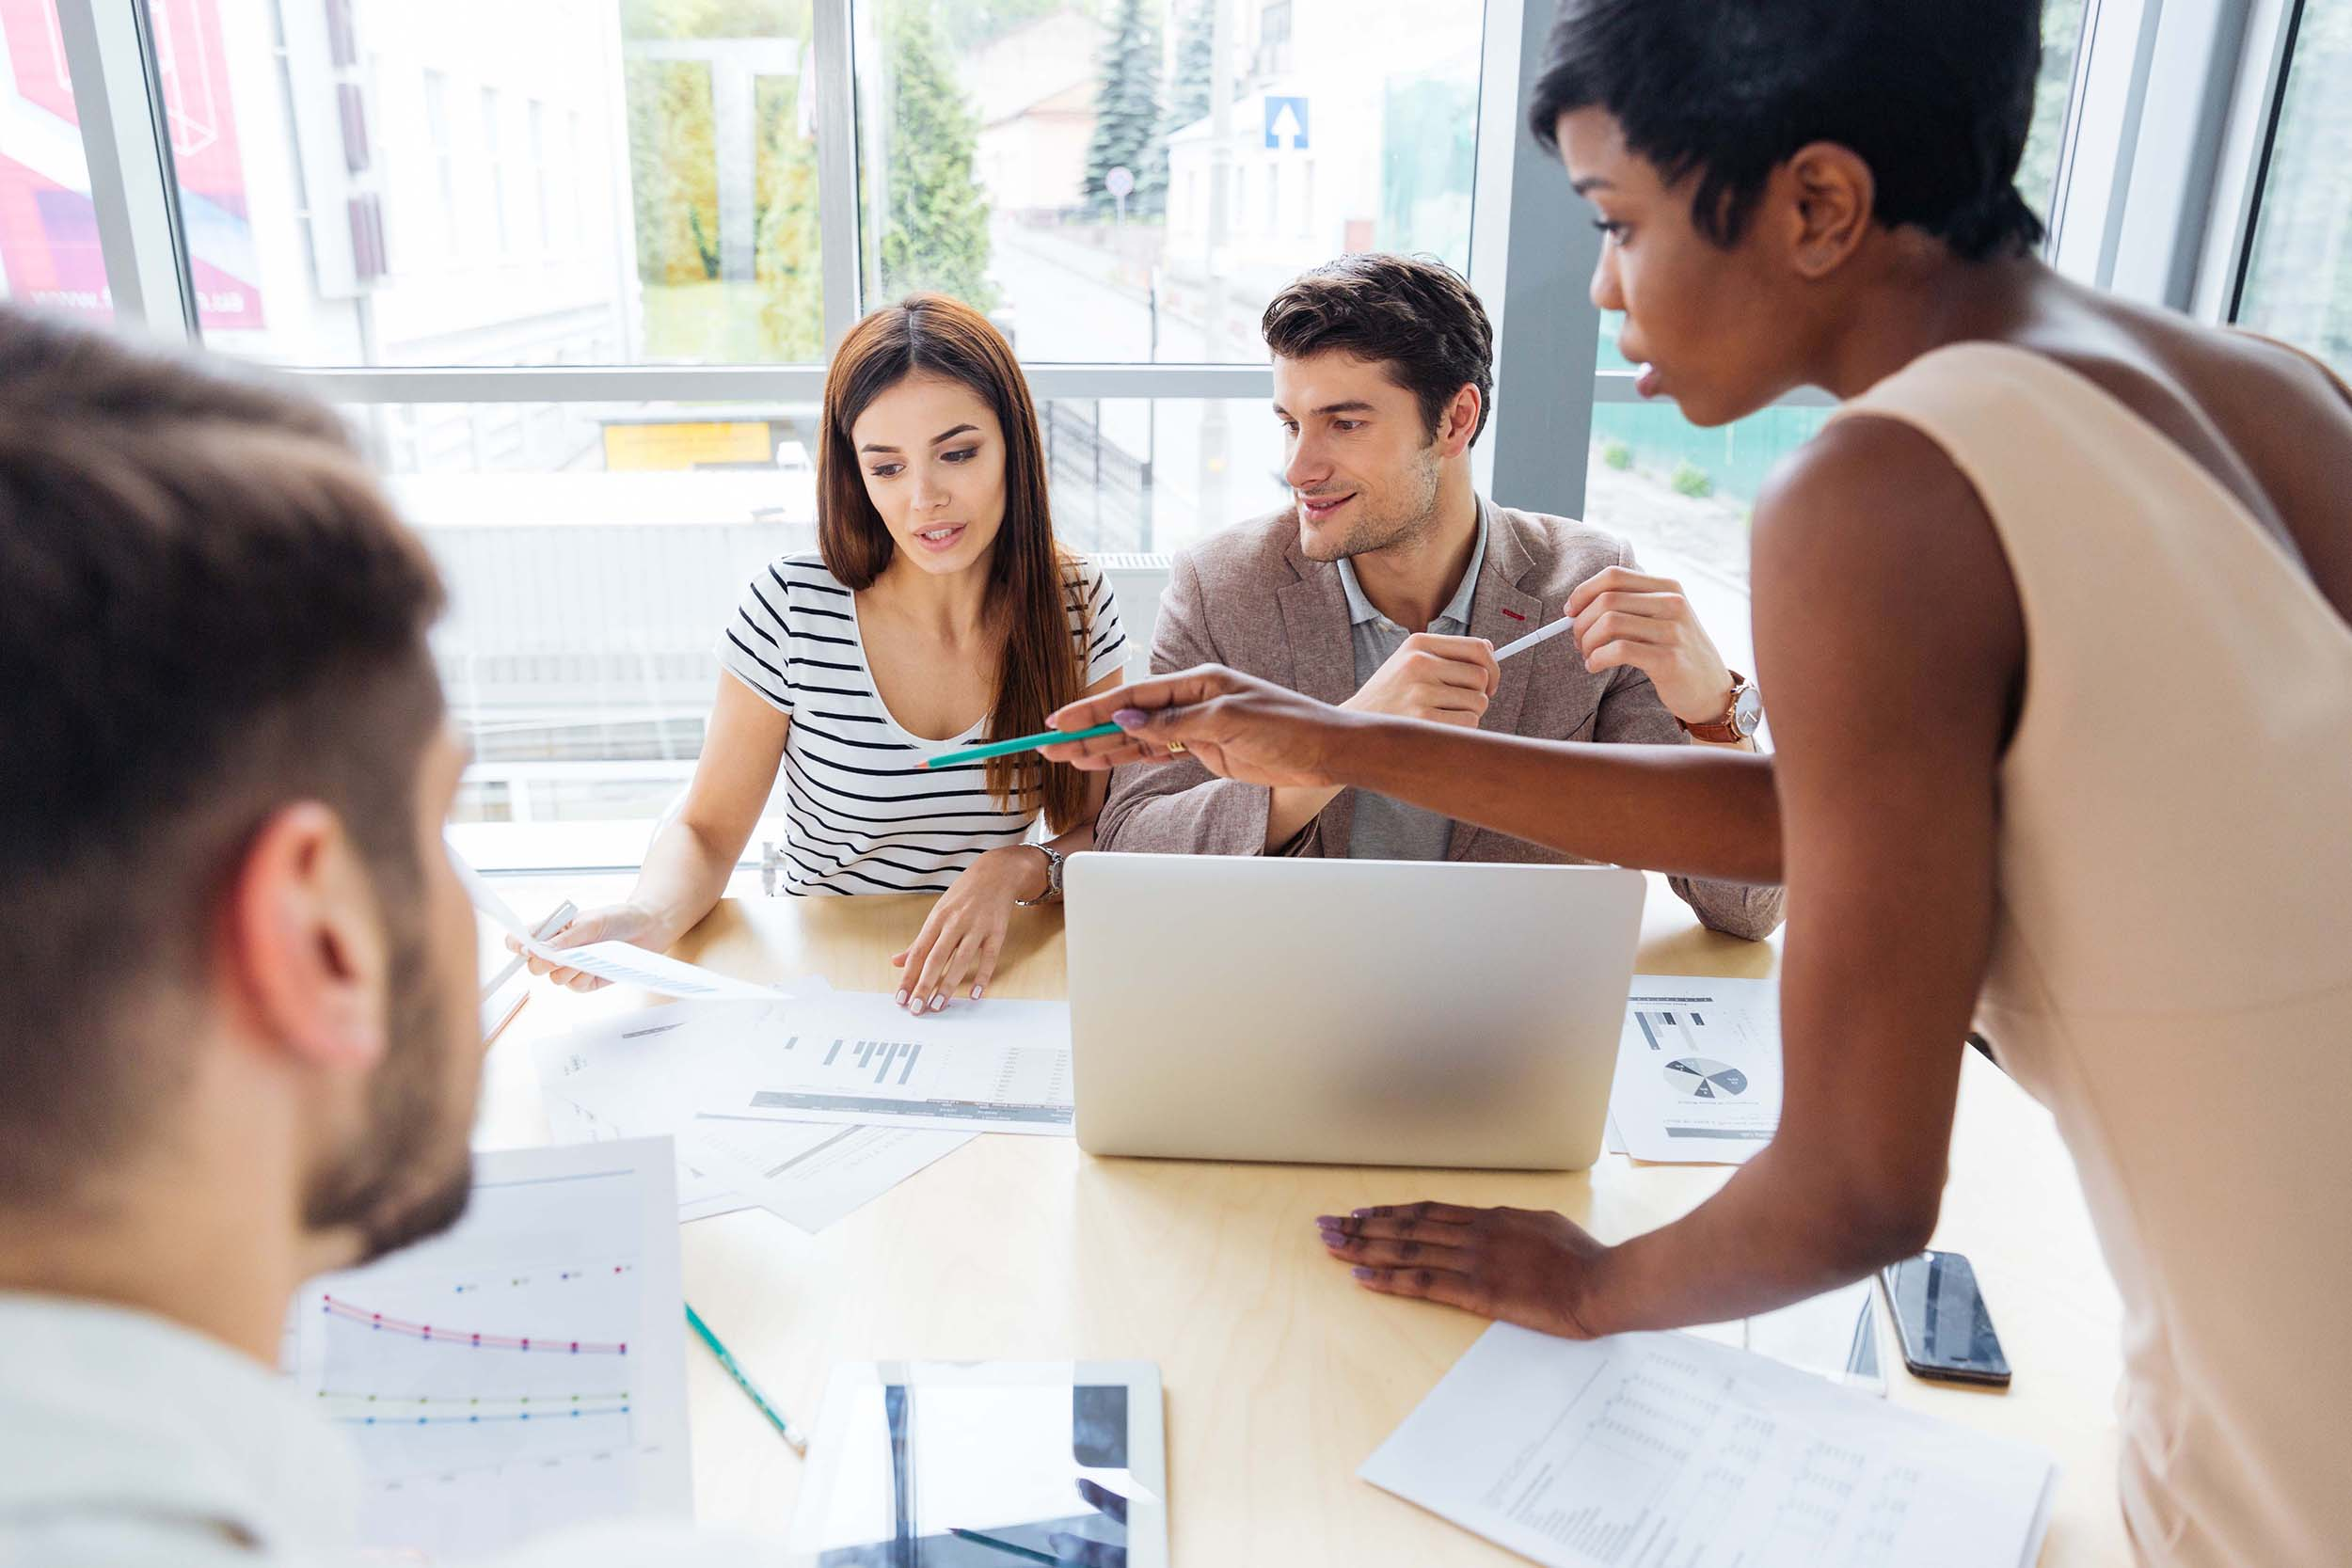 graphicstock-multiethnic-group-of-young-business-people-preparing-for-presentation-together-in-office_ruLcYmQS3x